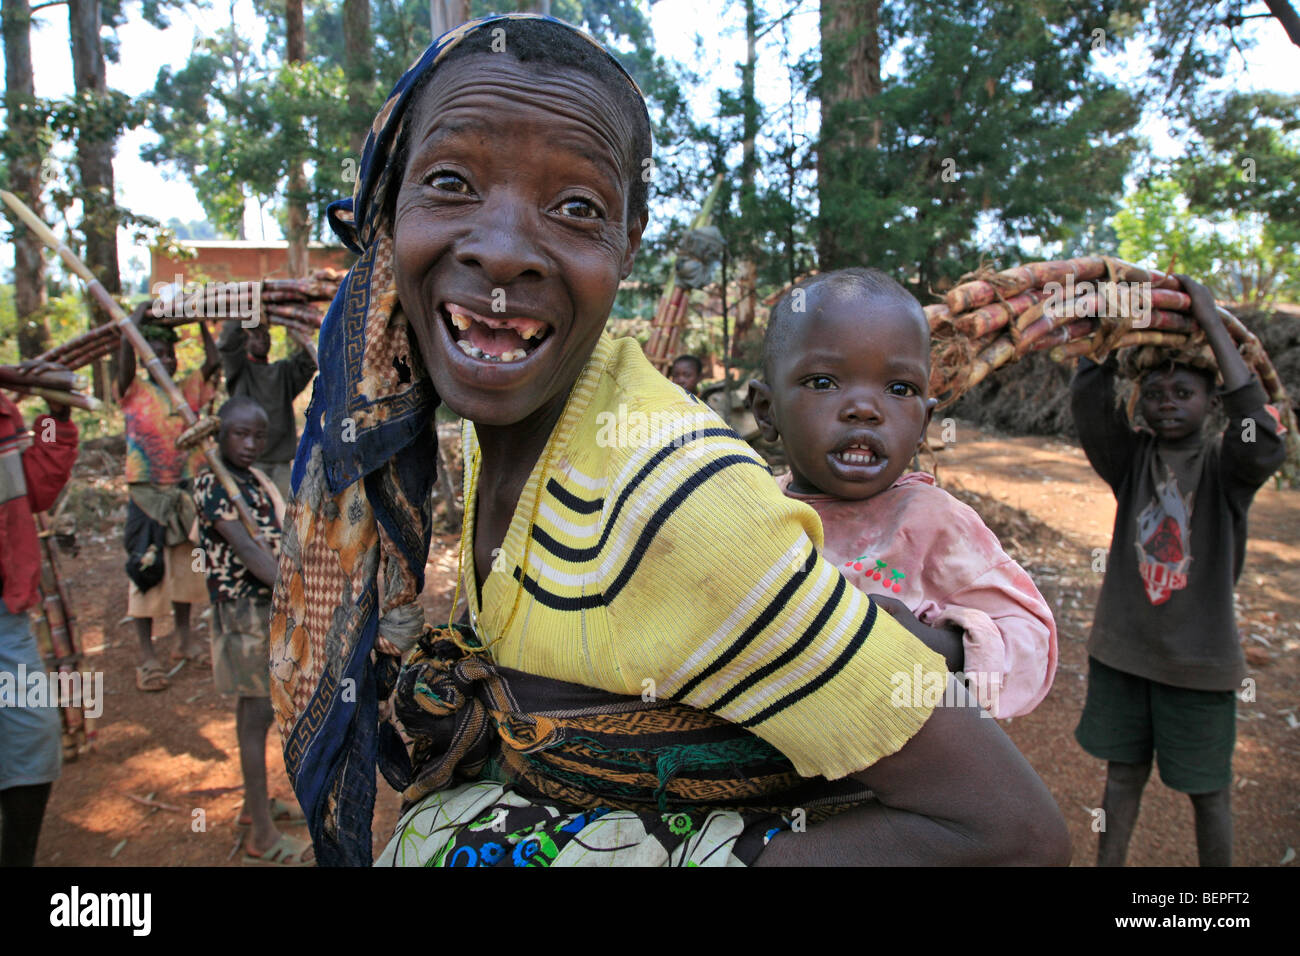 BURUNDI Mother and child, Gitera. PHOTOGRAPH by Sean Sprague 2009 - Stock Image